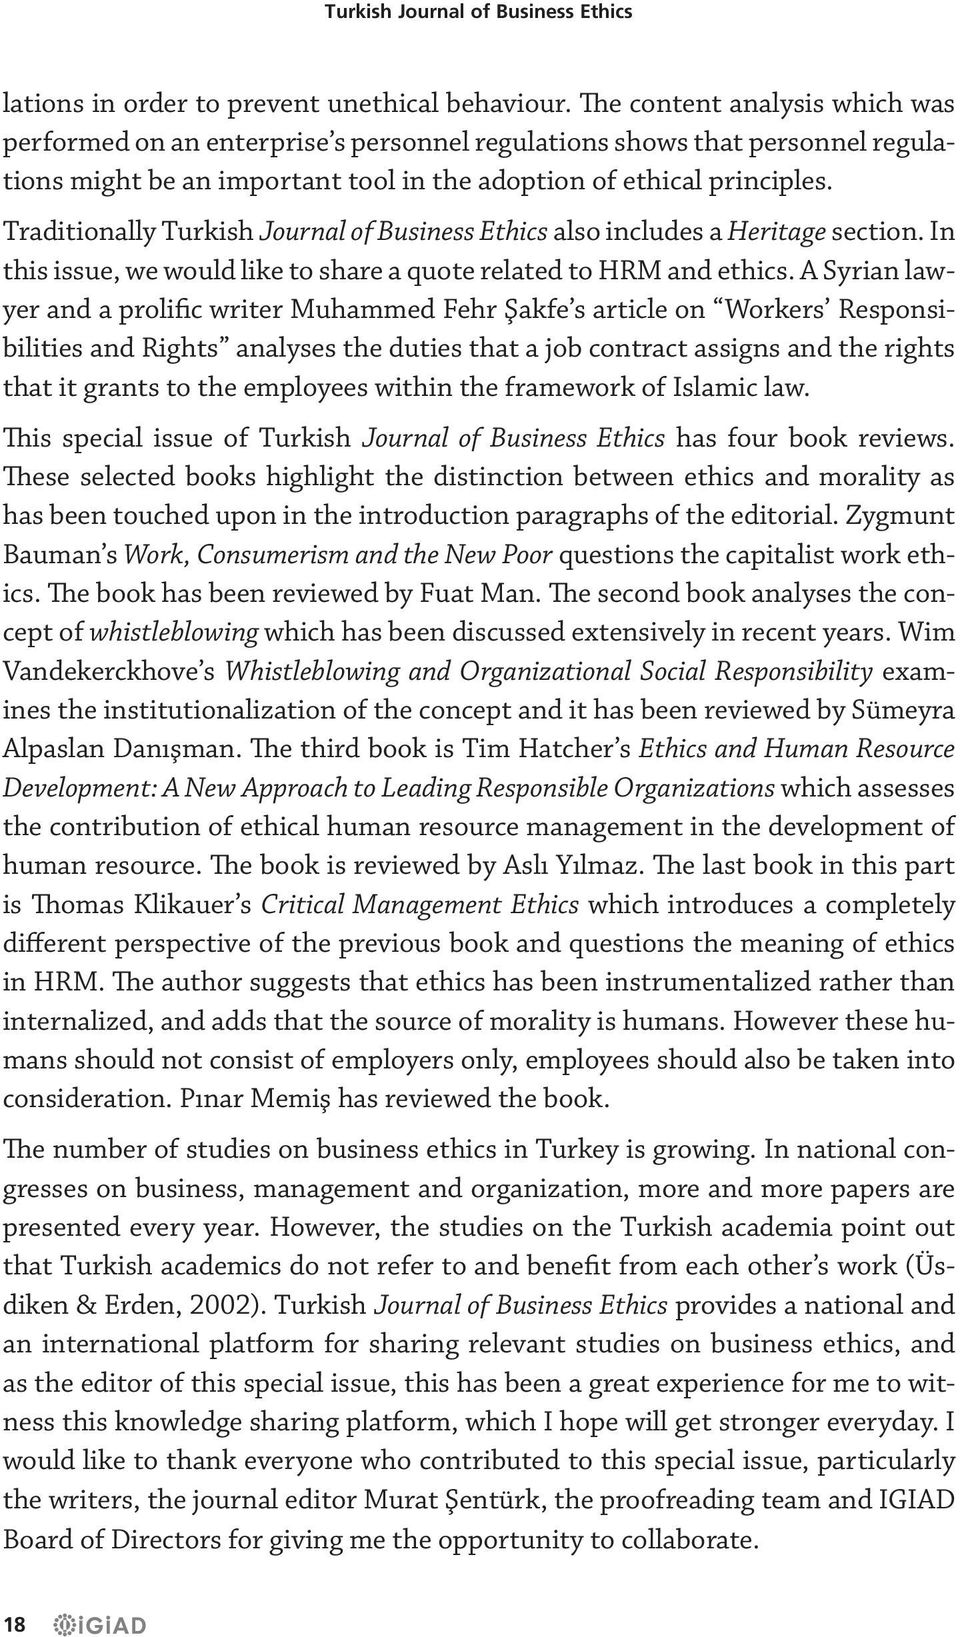 Traditionally Turkish Journal of Business Ethics also includes a Heritage section. In this issue, we would like to share a quote related to HRM and ethics.